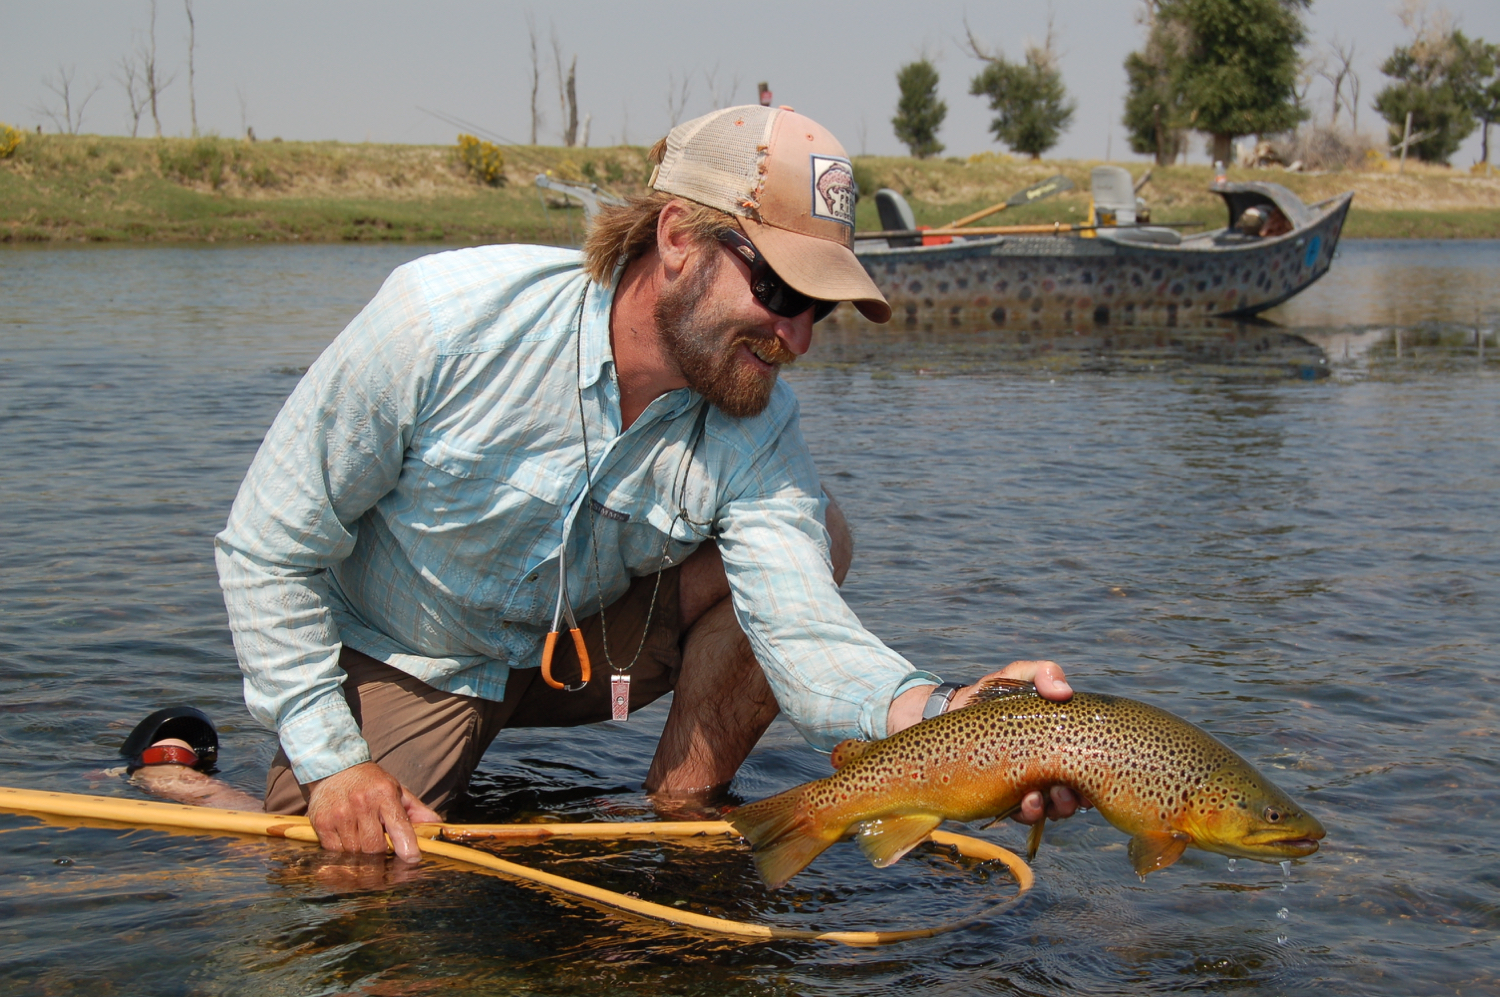 greenriverflyfishing1.jpg